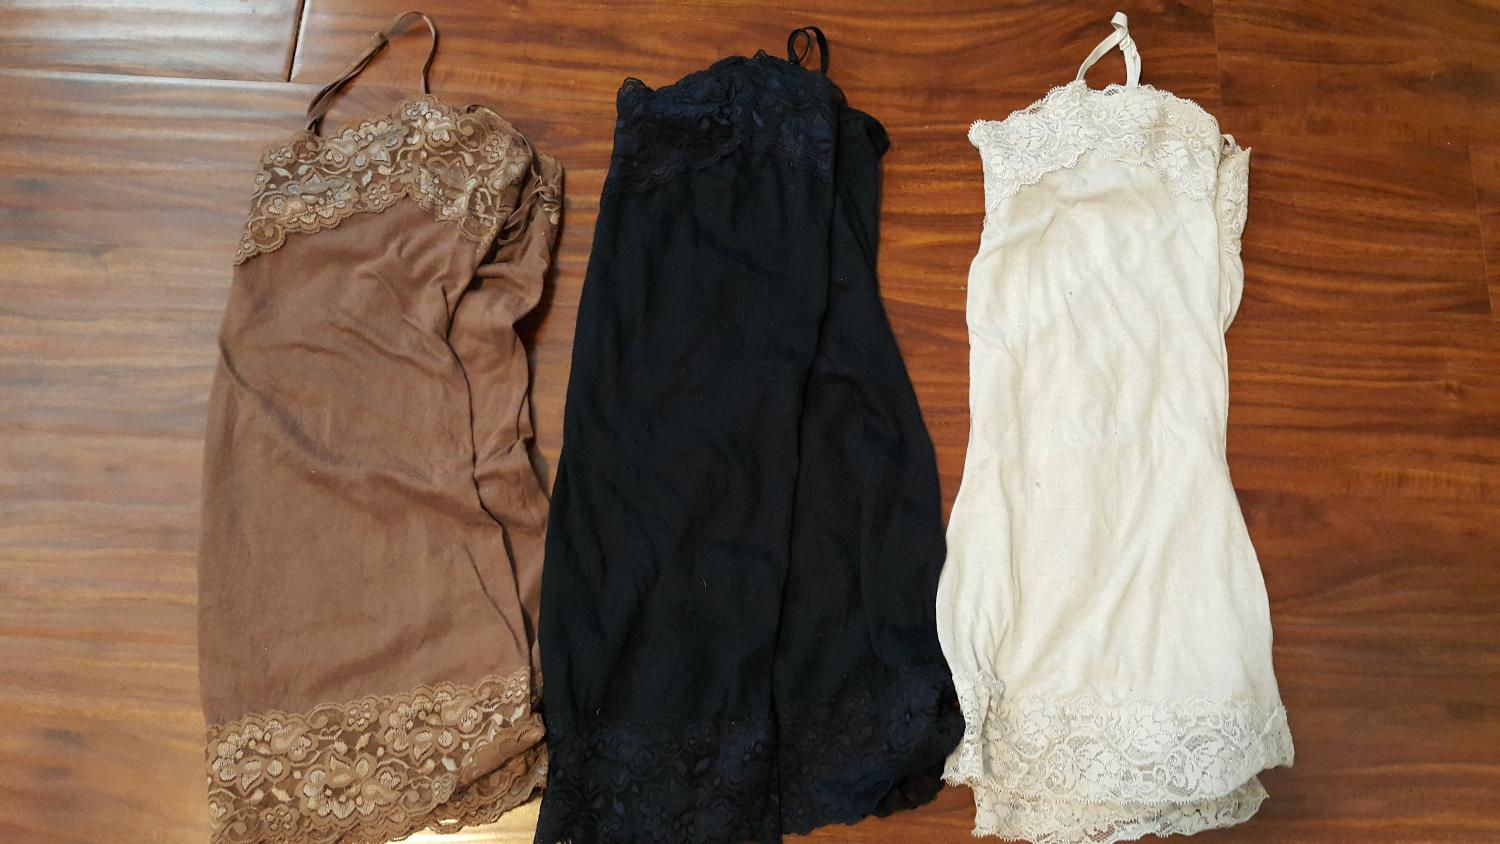 Best 3 Lace Tanks From Vanity Large For Sale In Minot